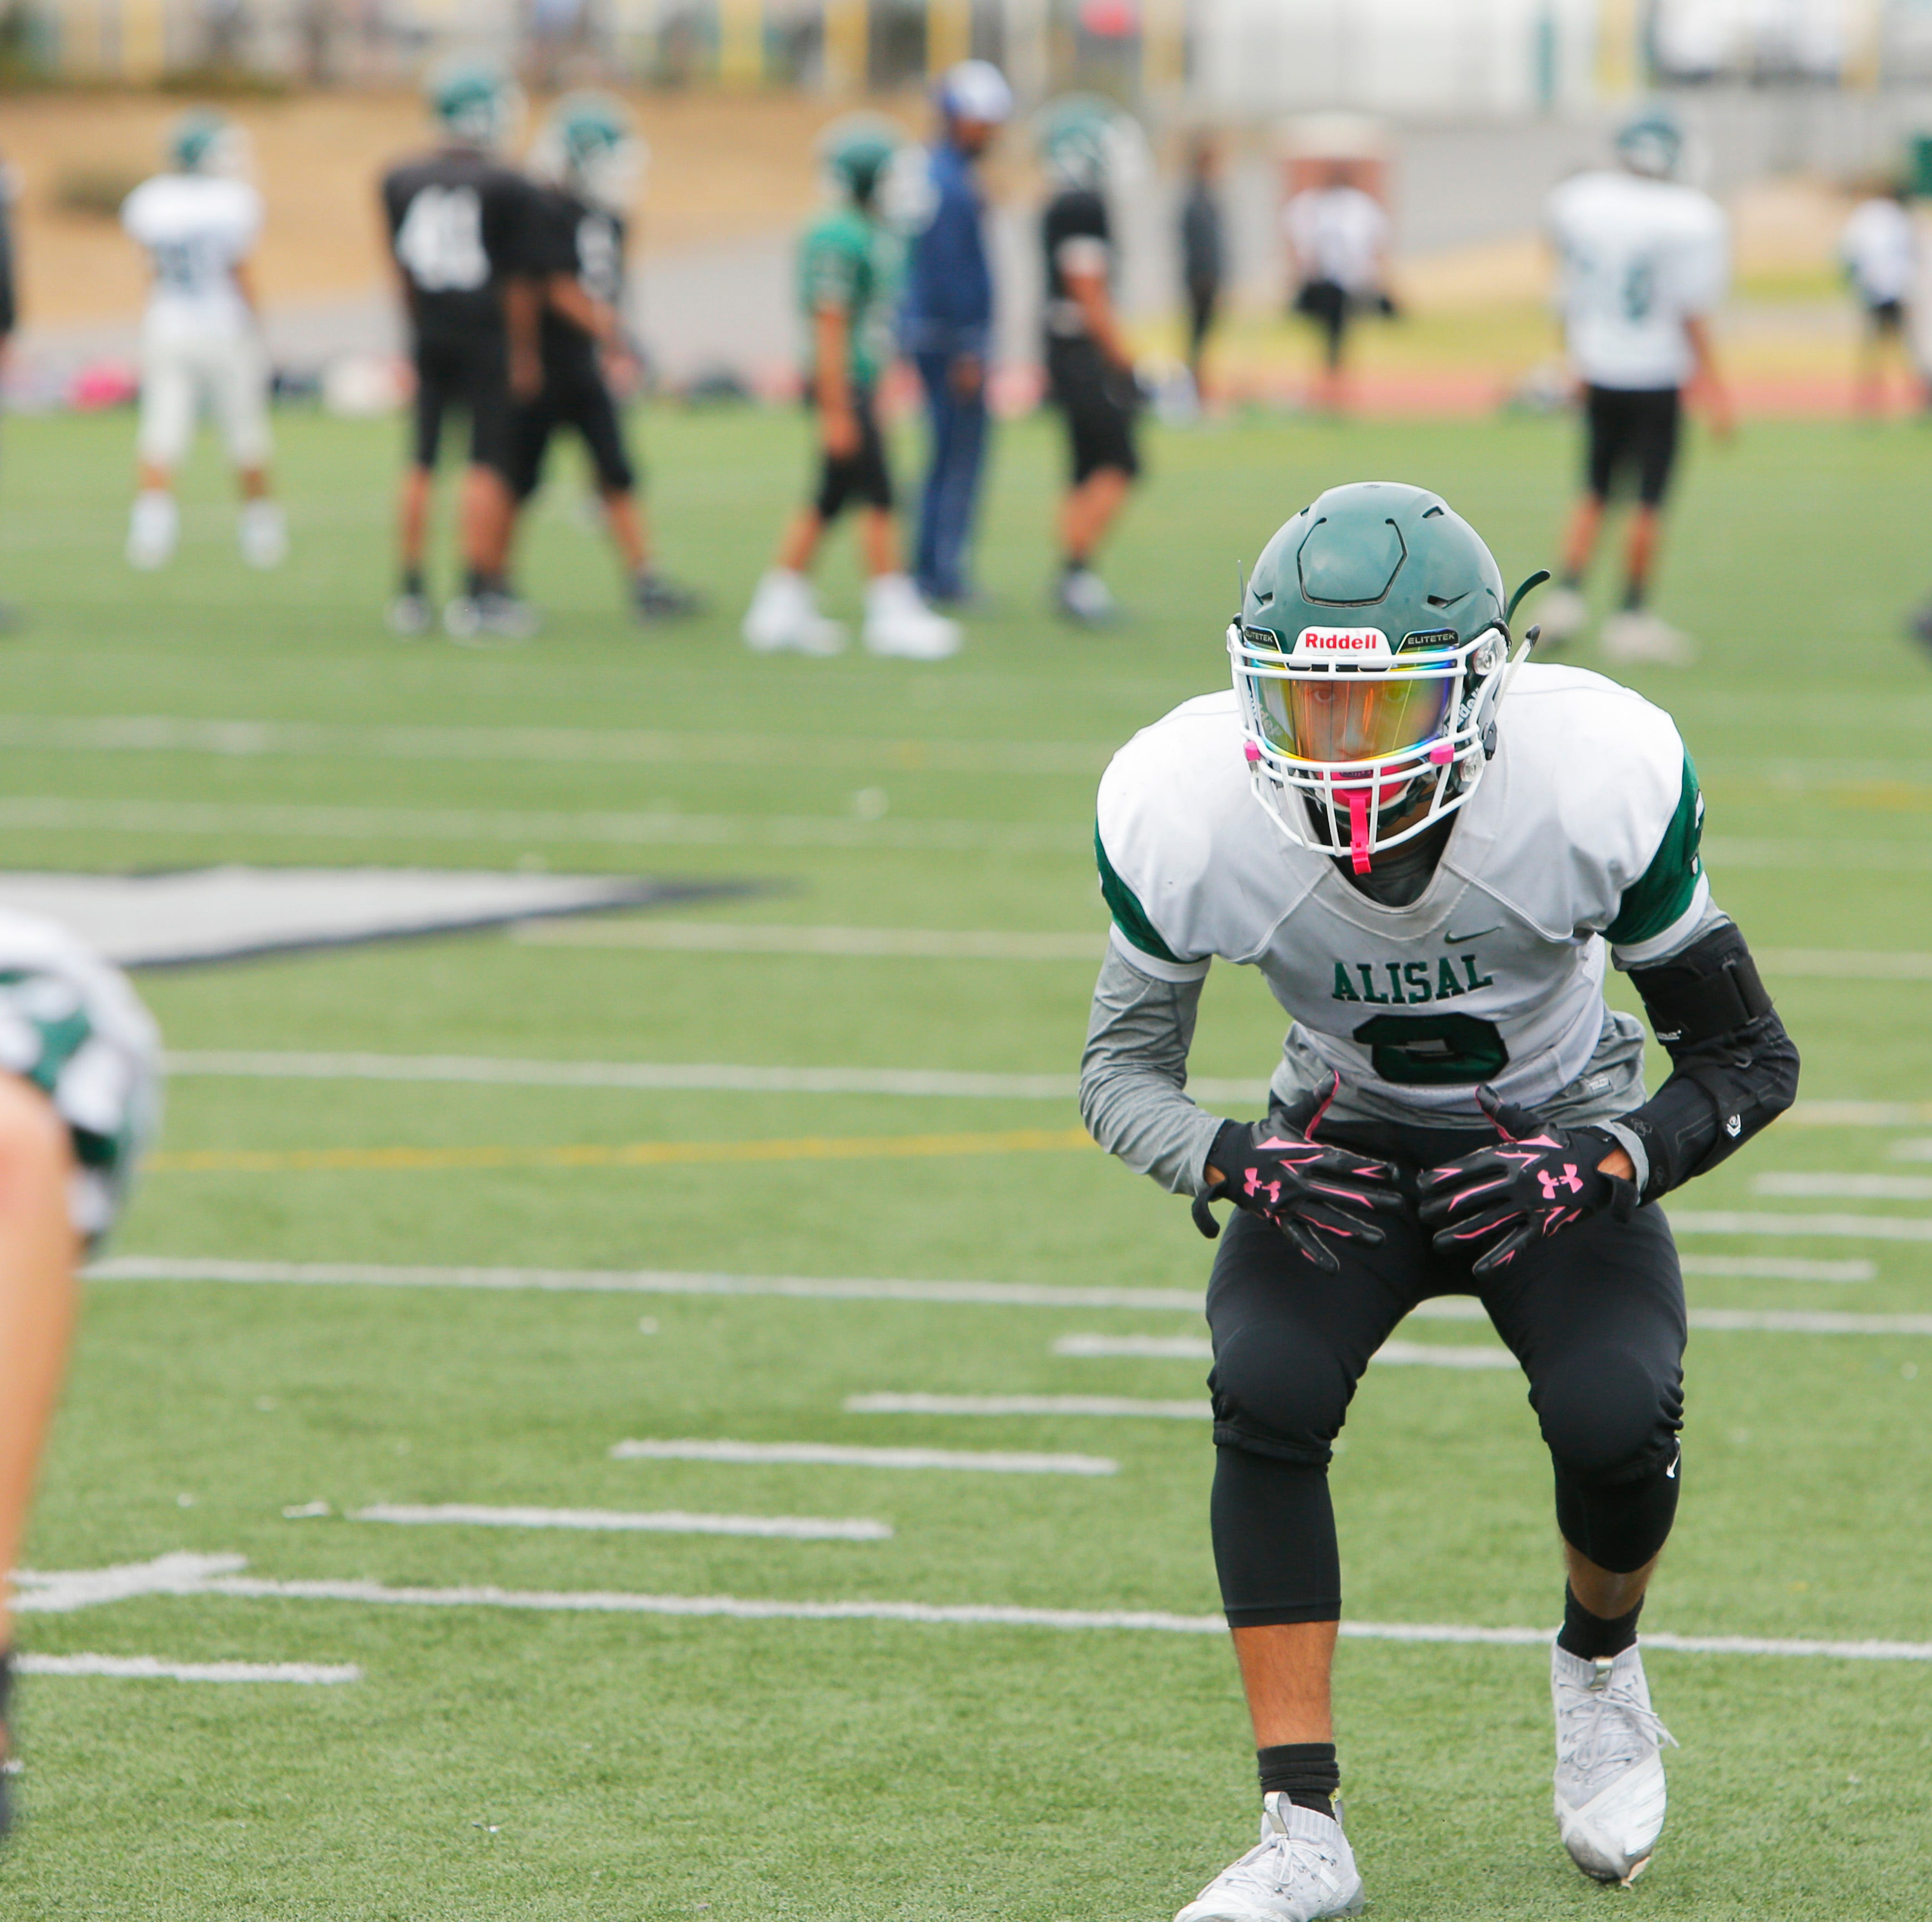 Why Alisal football's historic 2017 season was no fluke